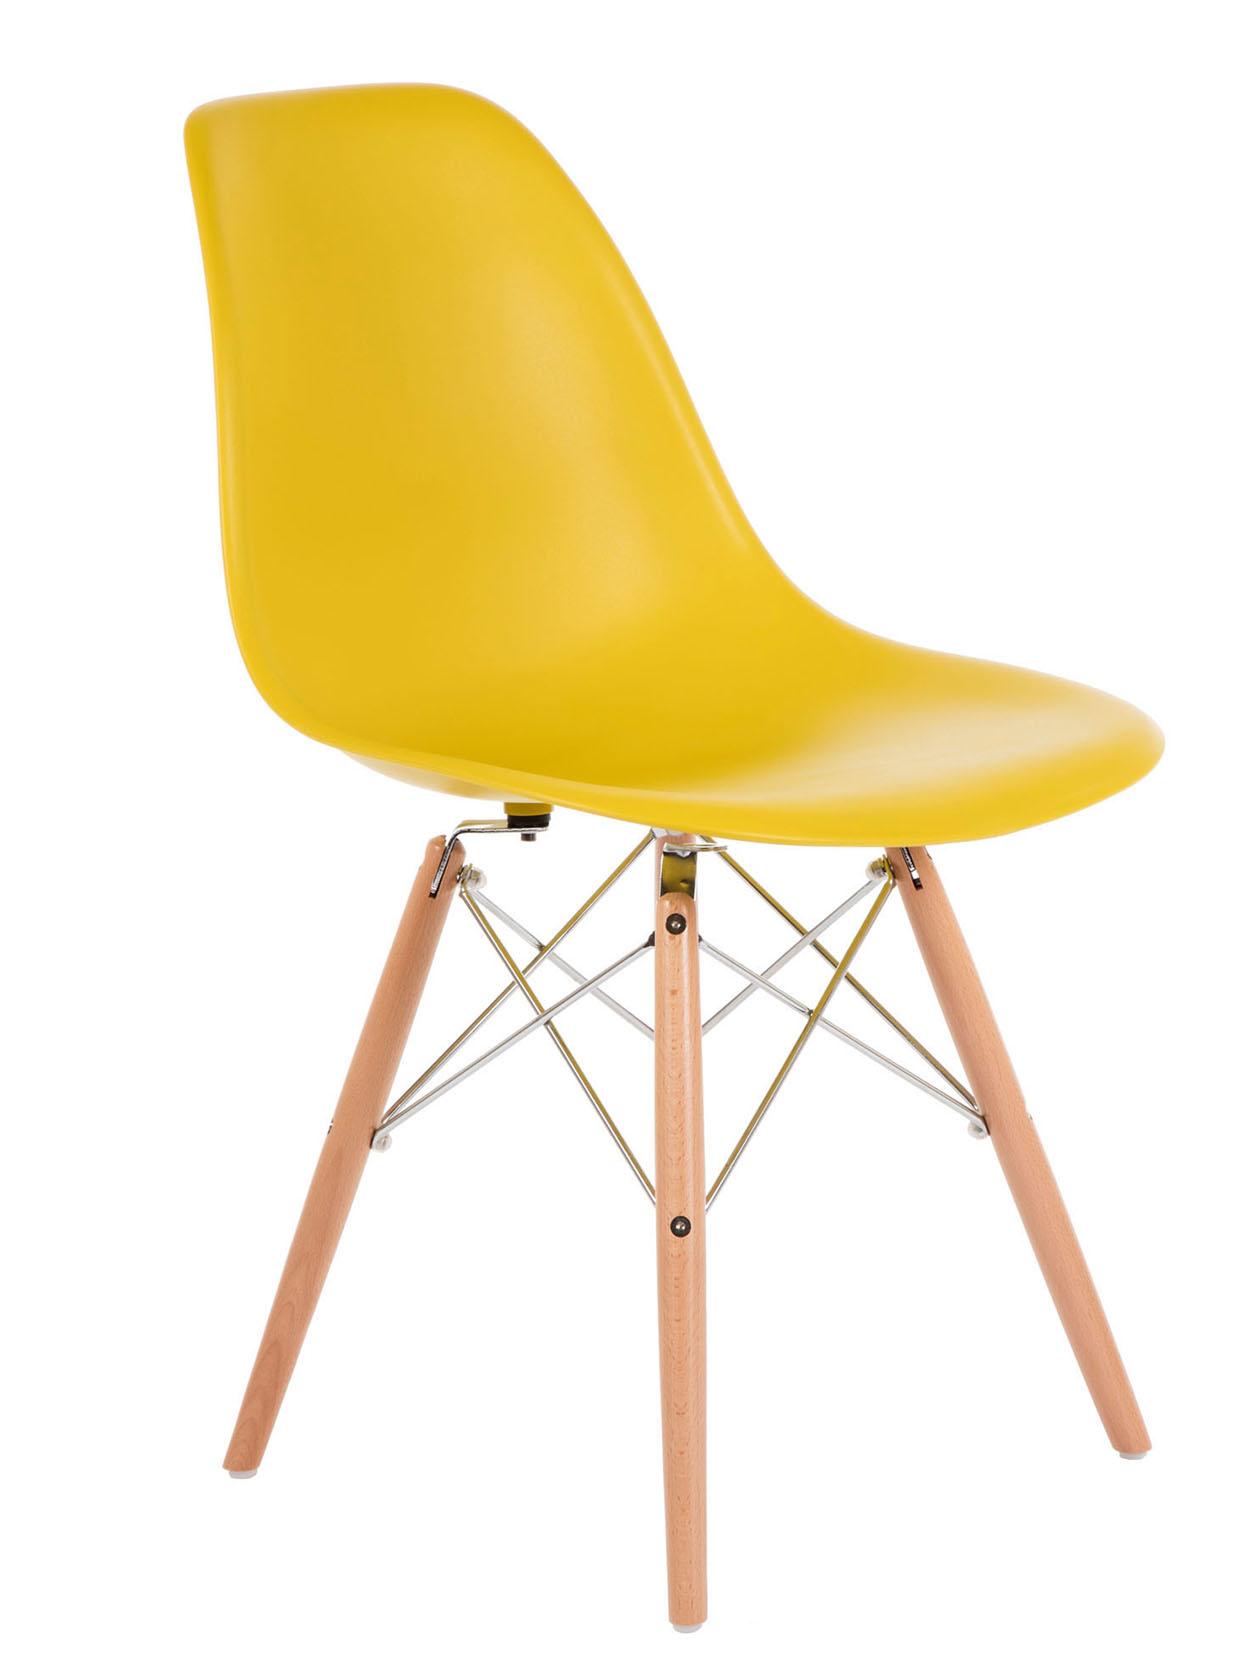 yellow eiffel chair with wooden legs